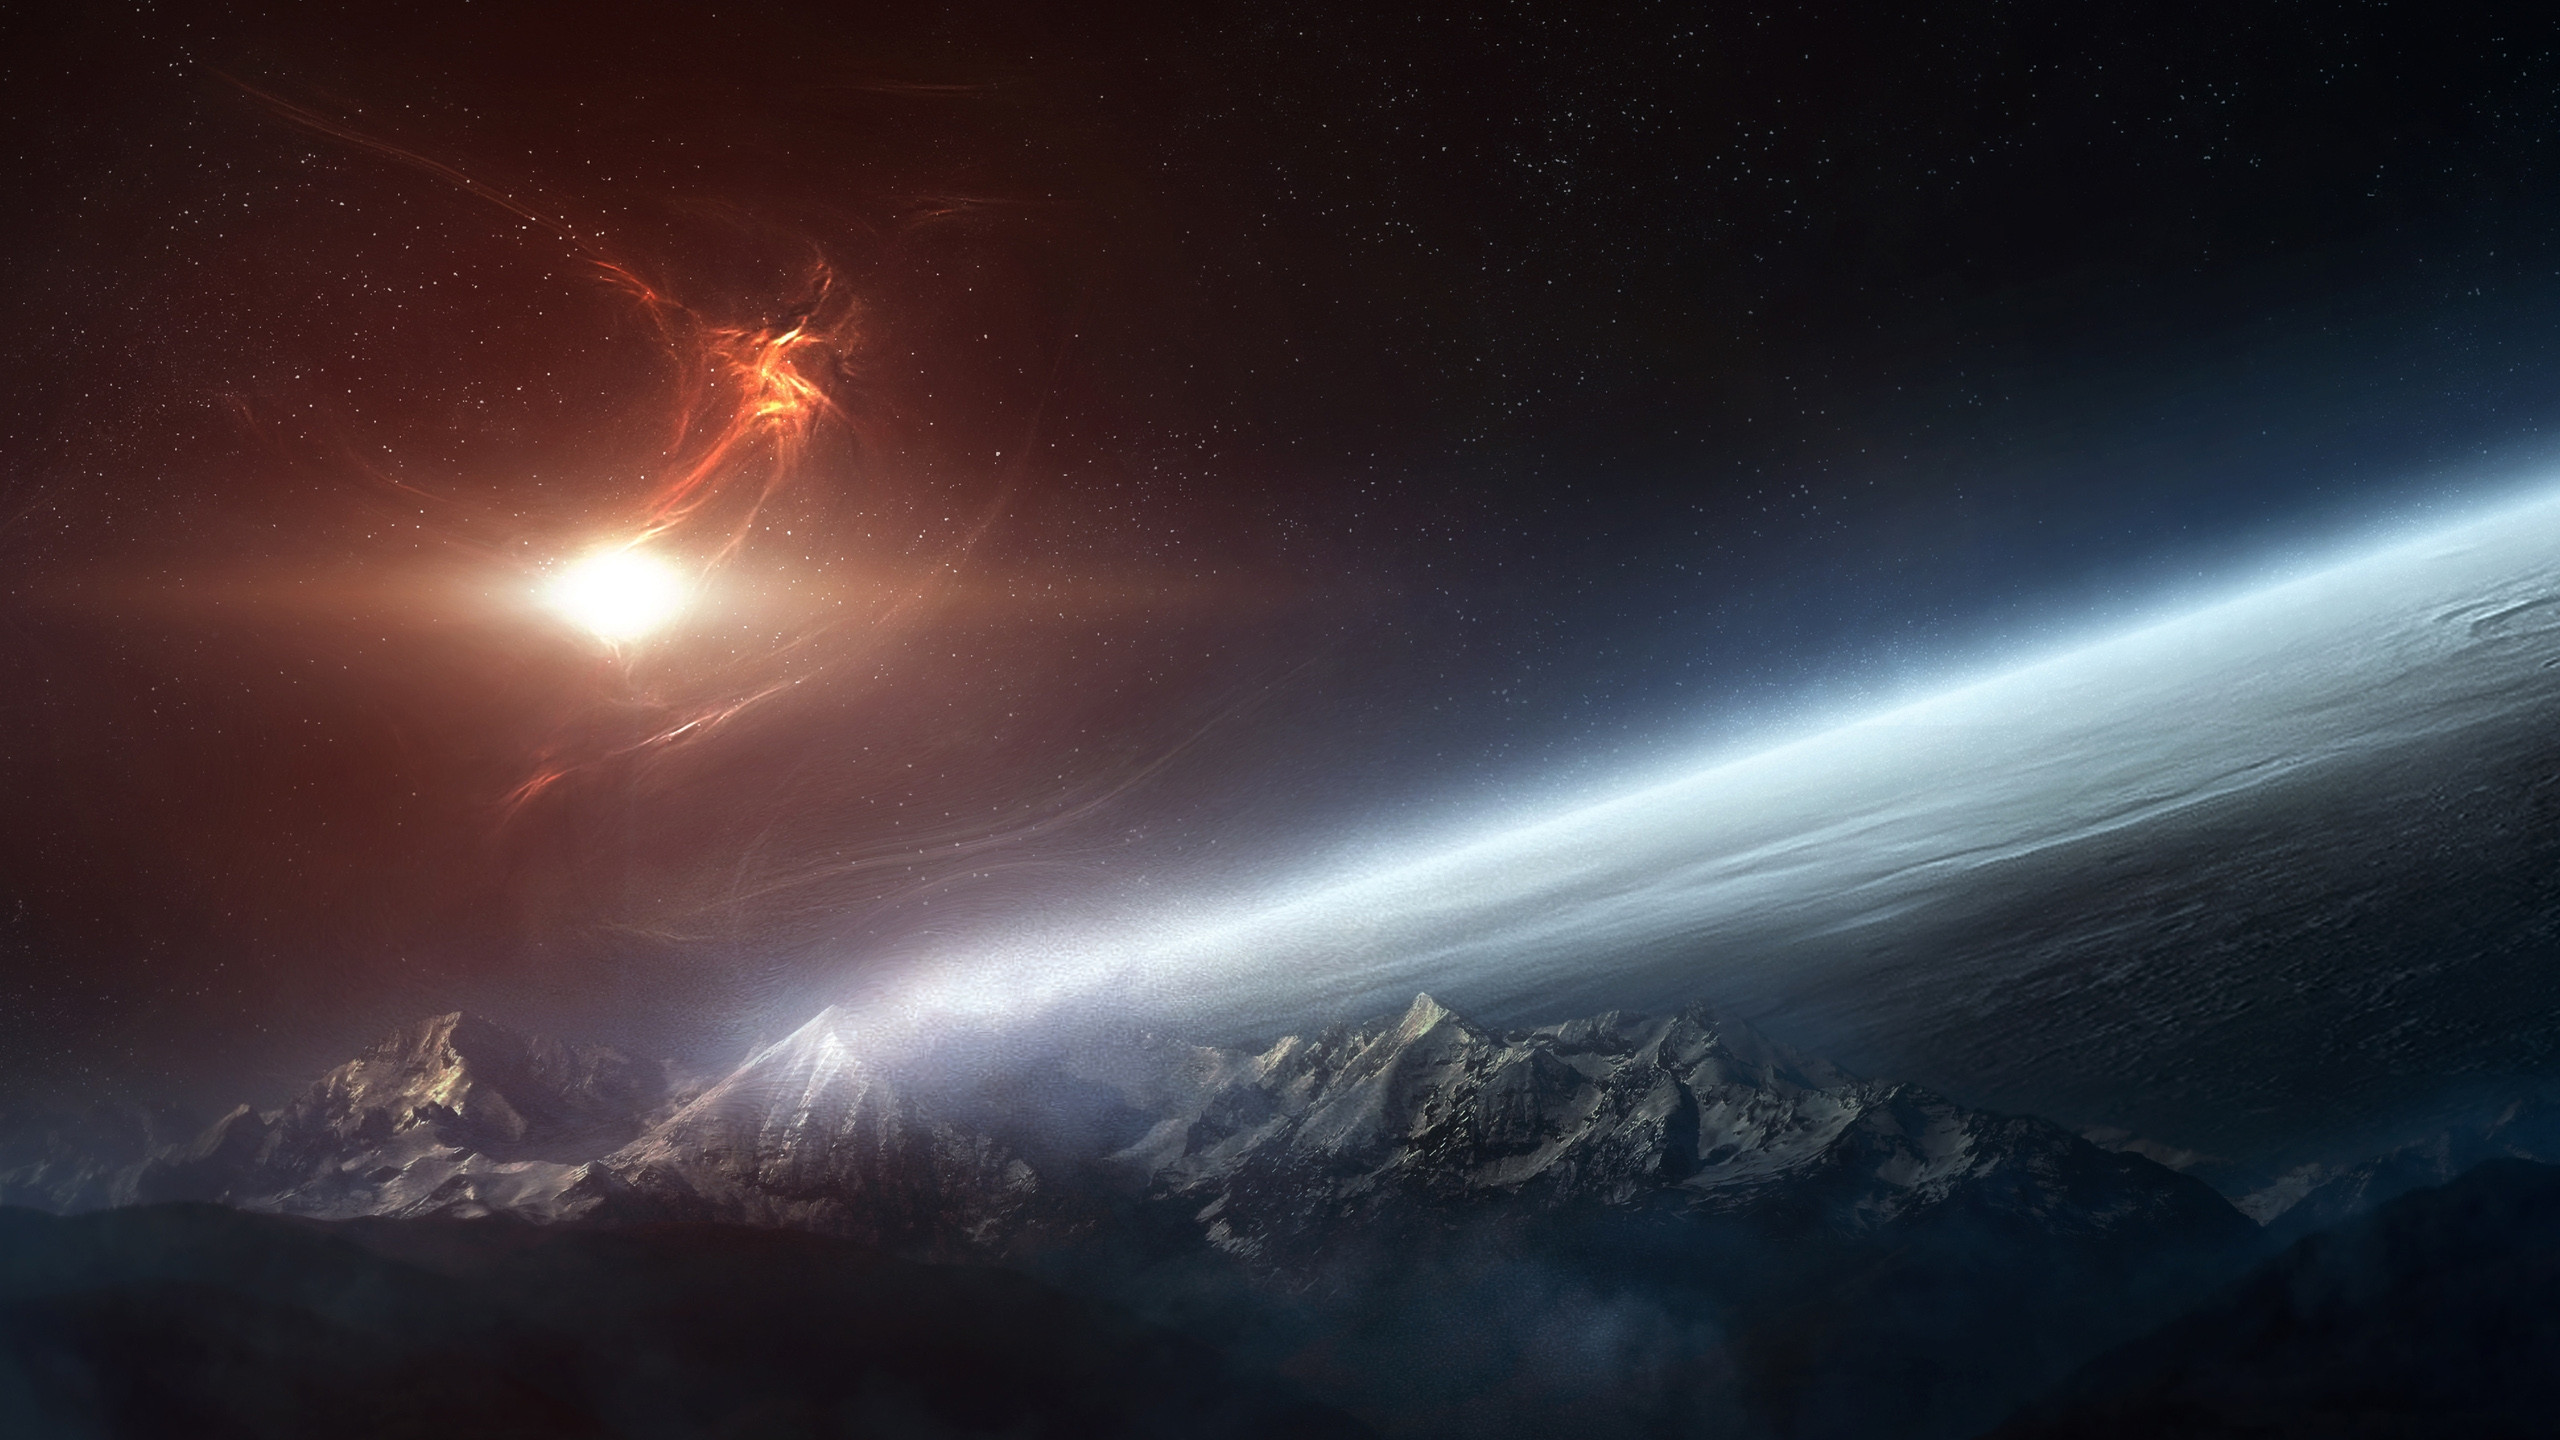 Space Wallpaper 2560x1440